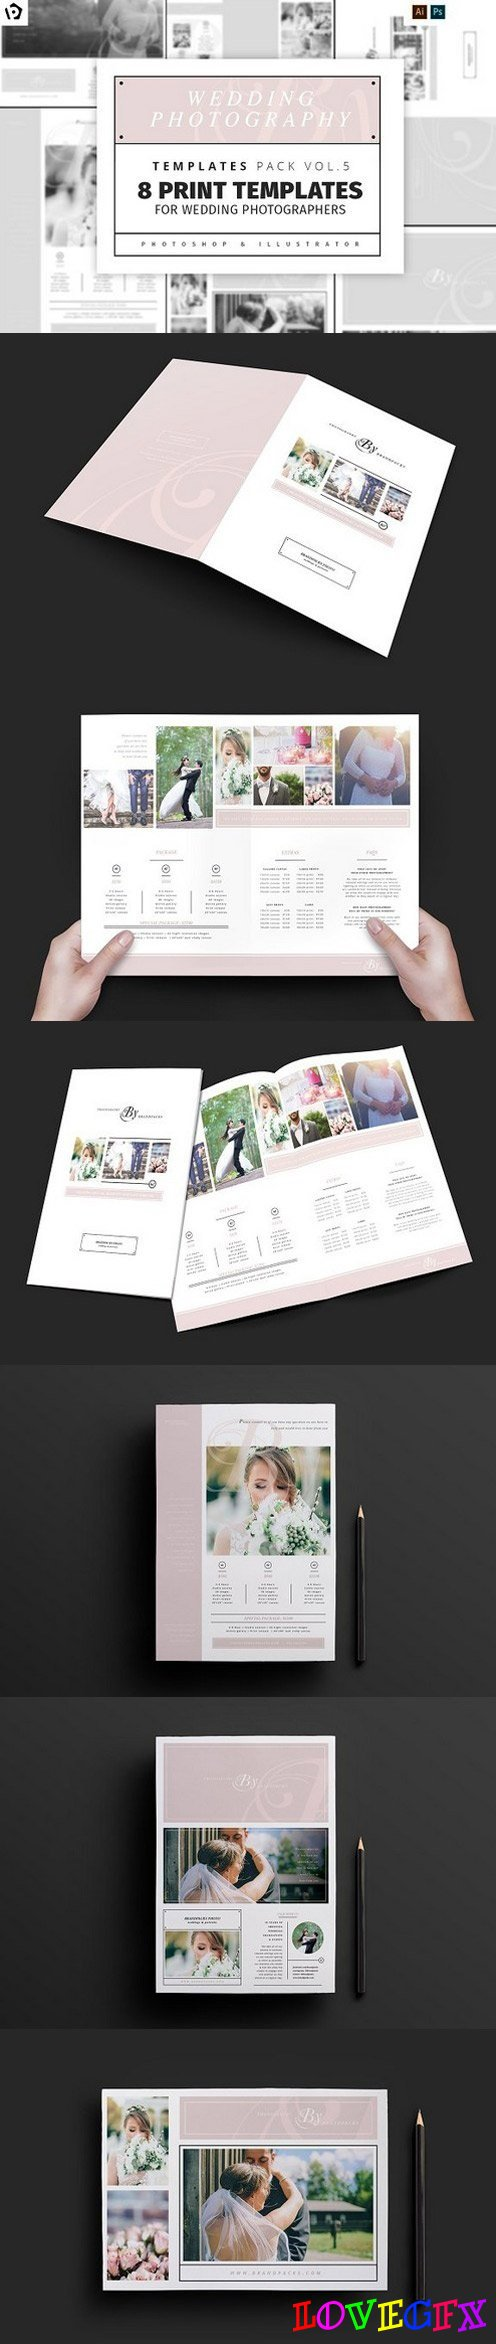 Wedding Photography Templates Pack 5 1347997